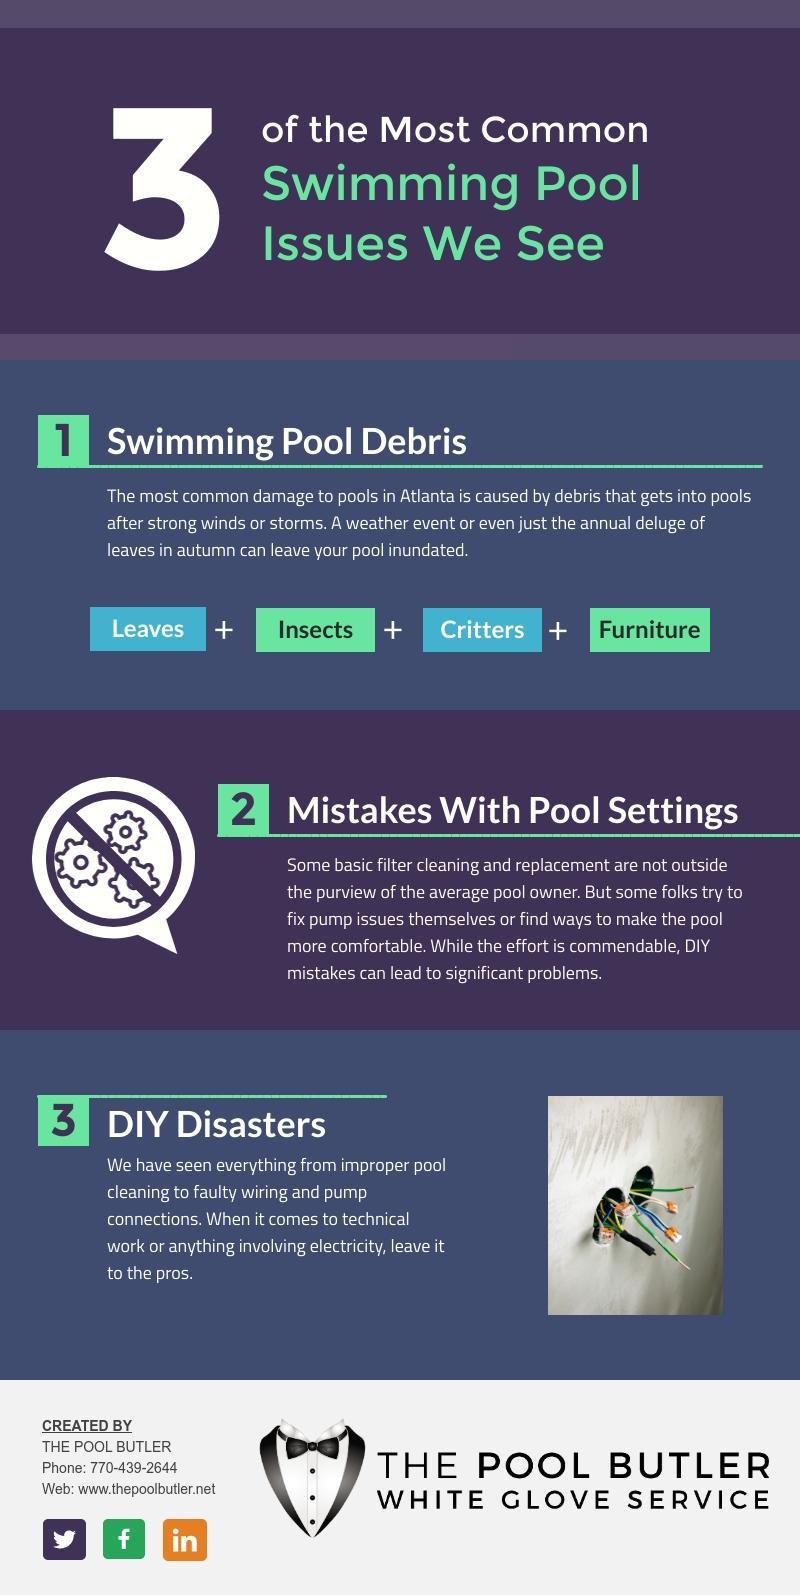 The Most Common Swimming Pool Issues We Encounter [infographic]